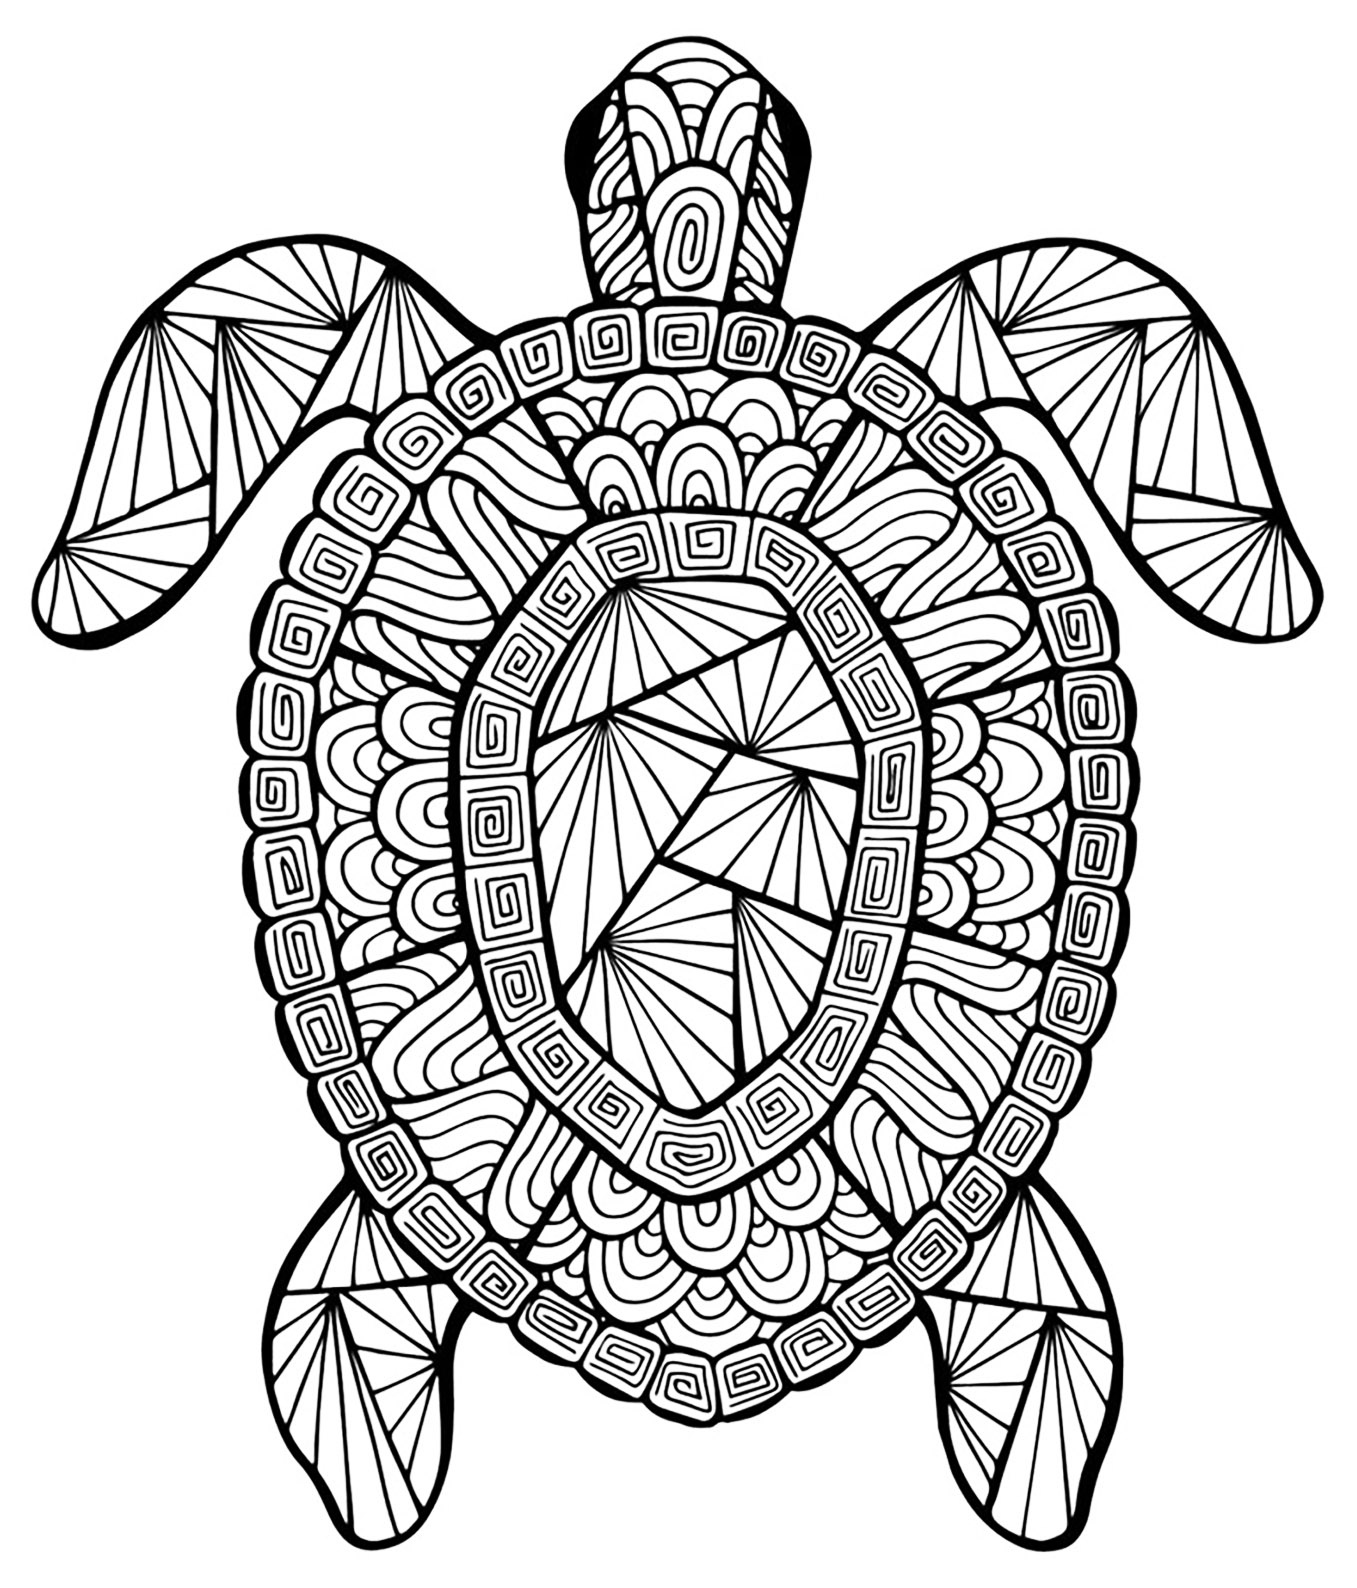 turtle coloring pictures to print top 20 free printable turtle coloring pages online to pictures print coloring turtle